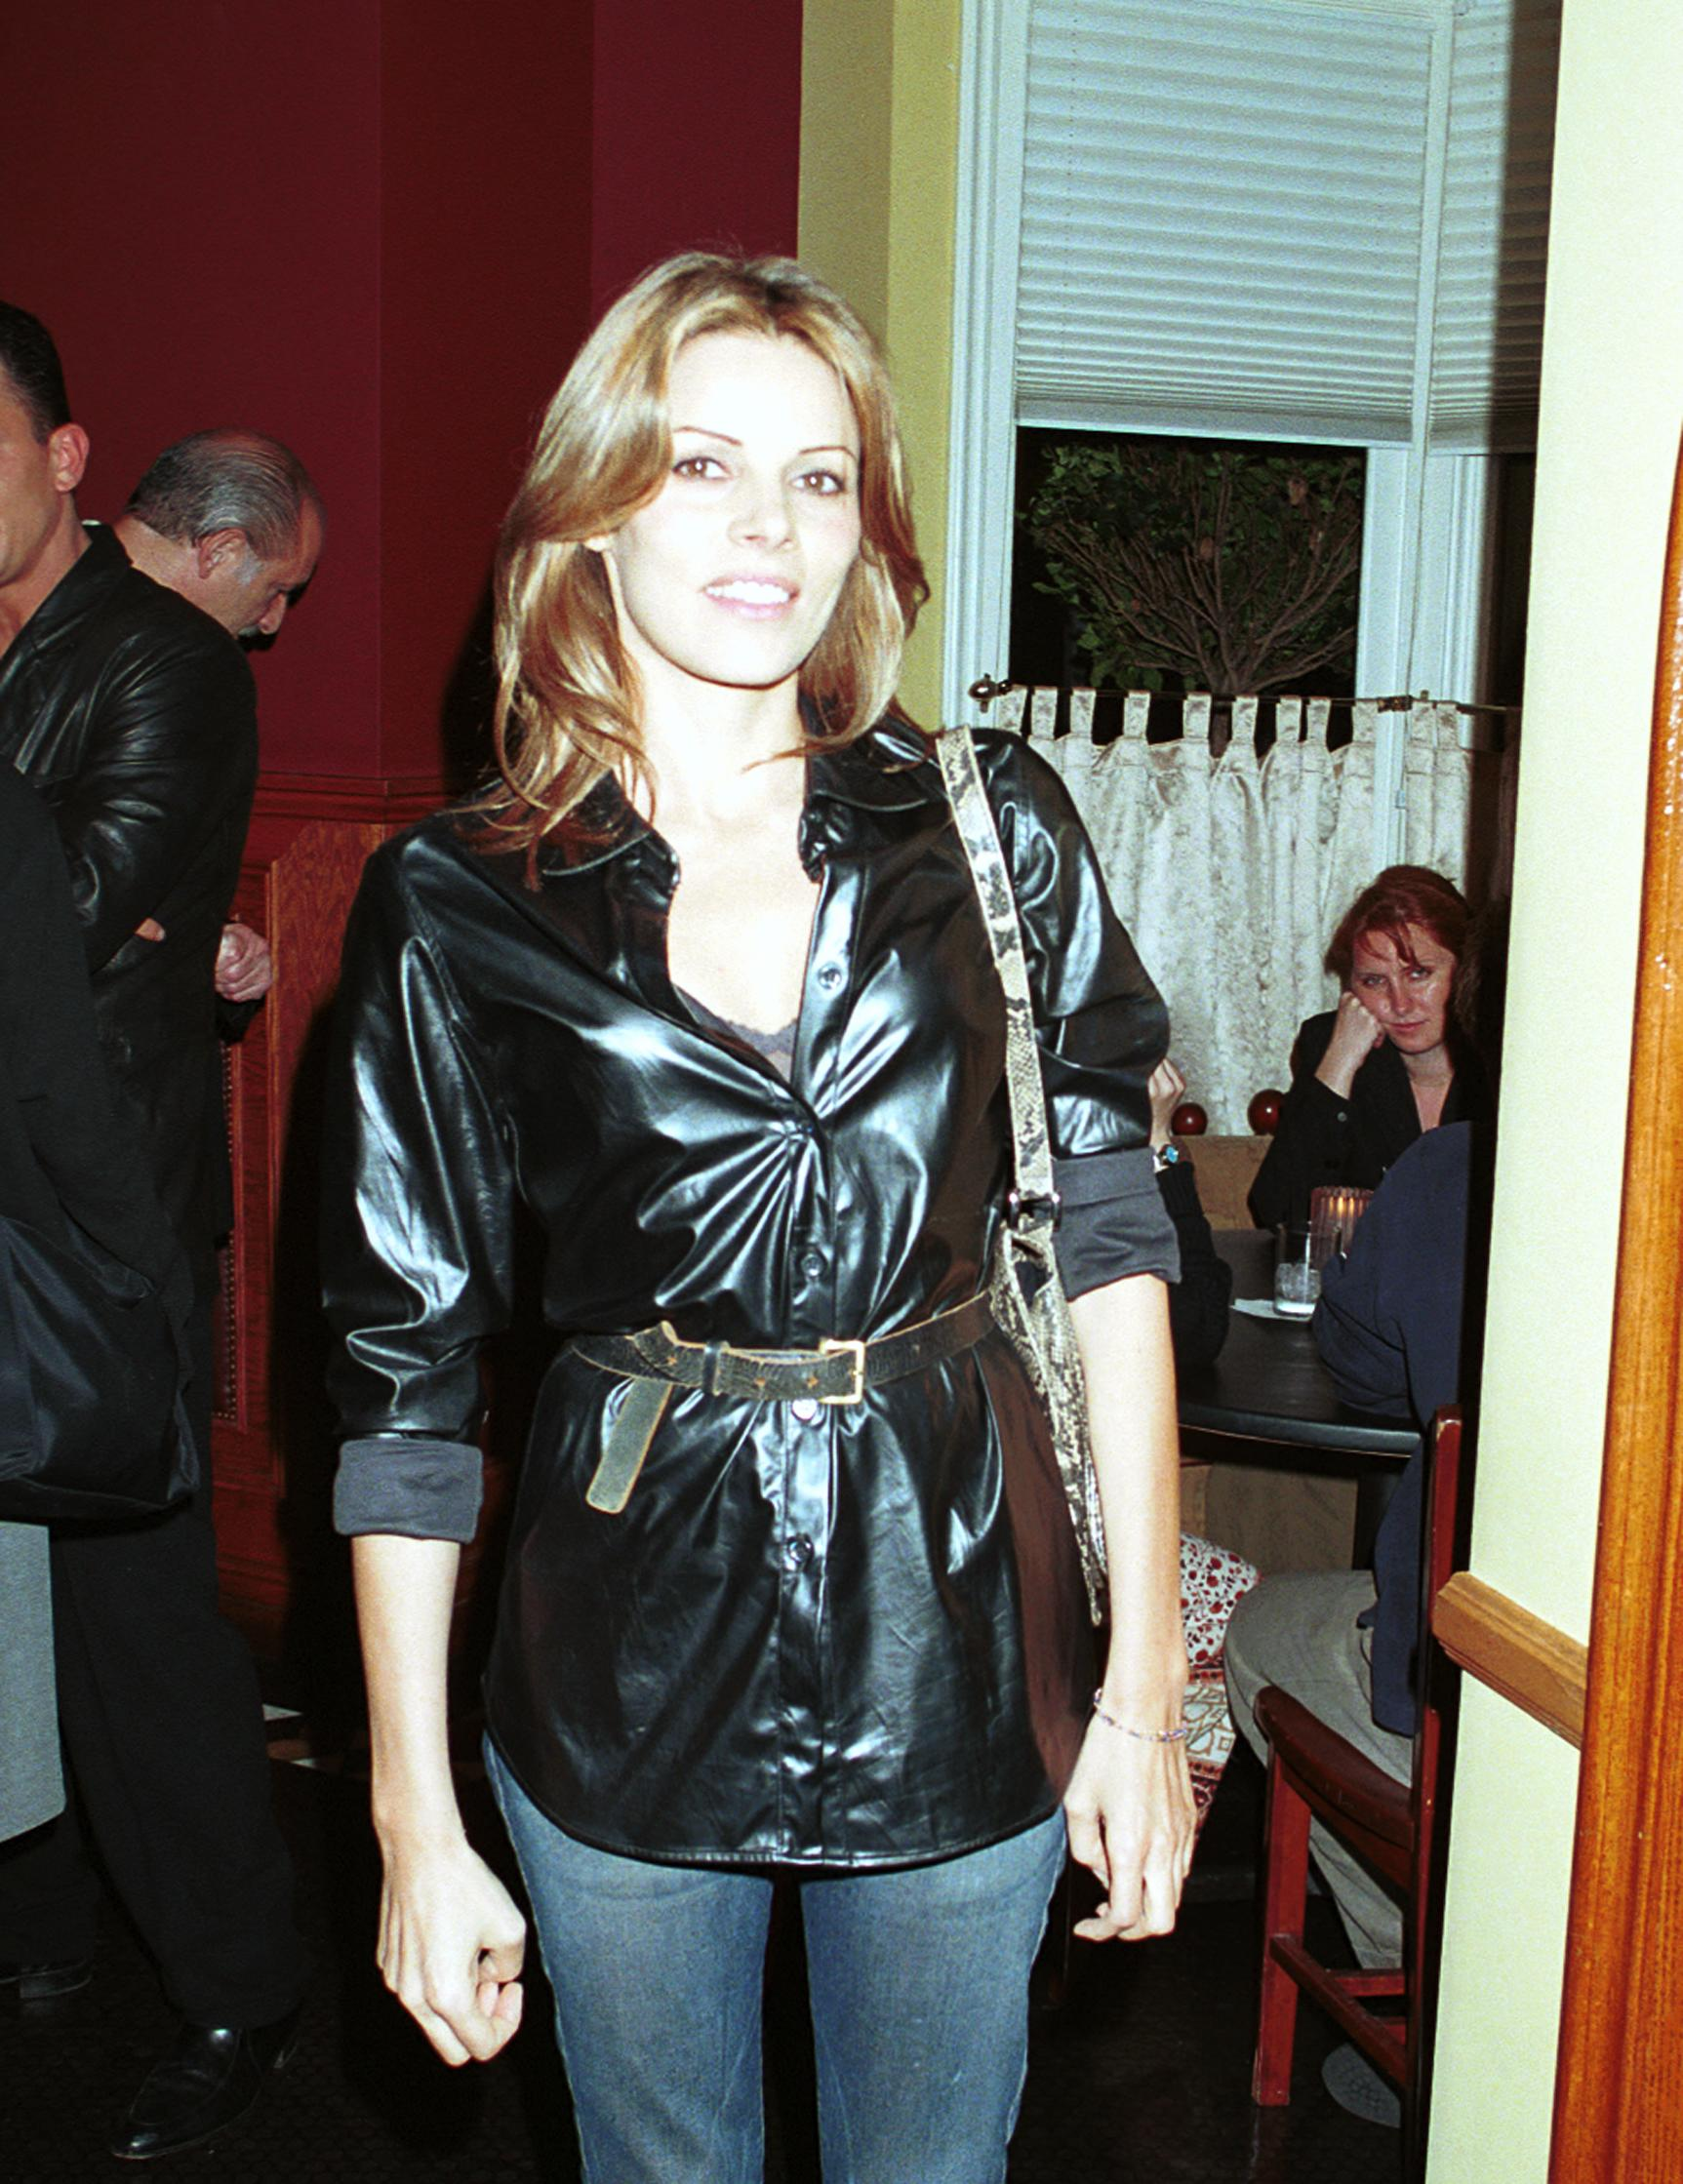 Tahnee Welch Leaving Atlantic Restaurant circa 1999. | Source: Getty Images